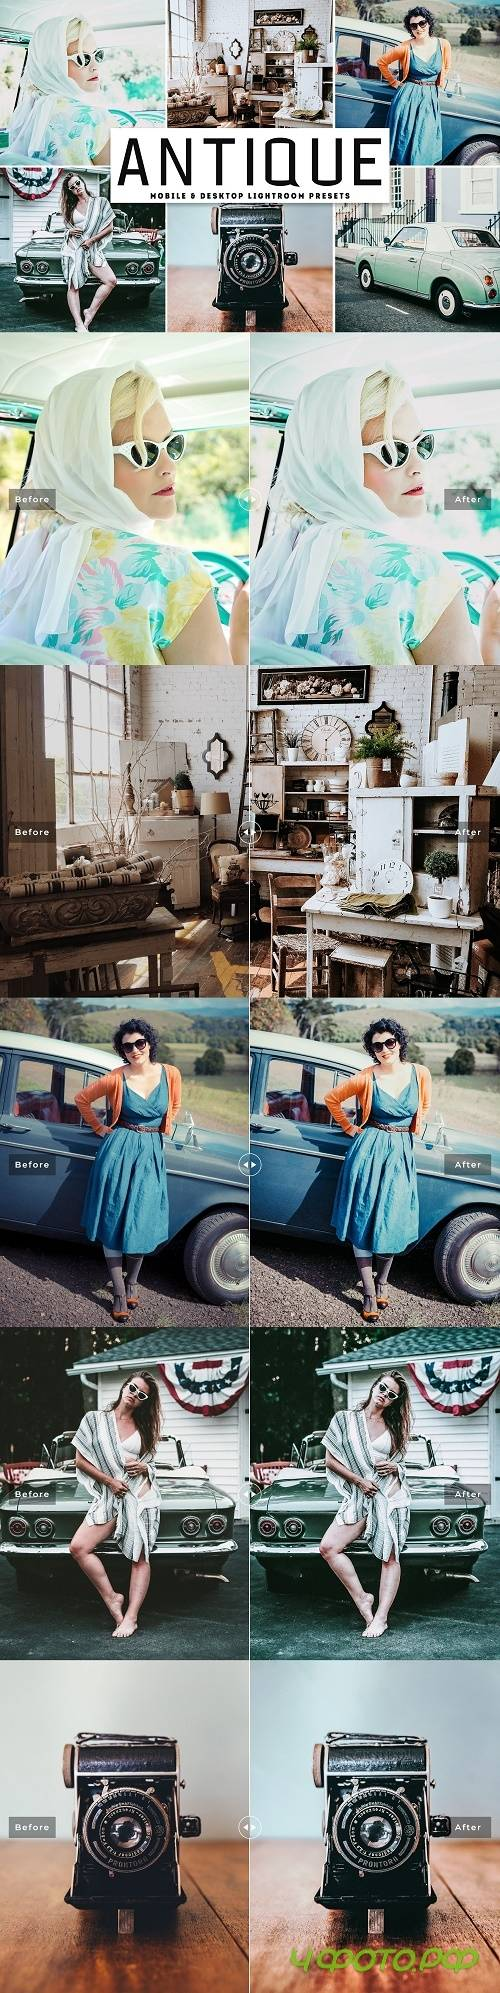 Antique Lightroom Presets Pack - 4092123